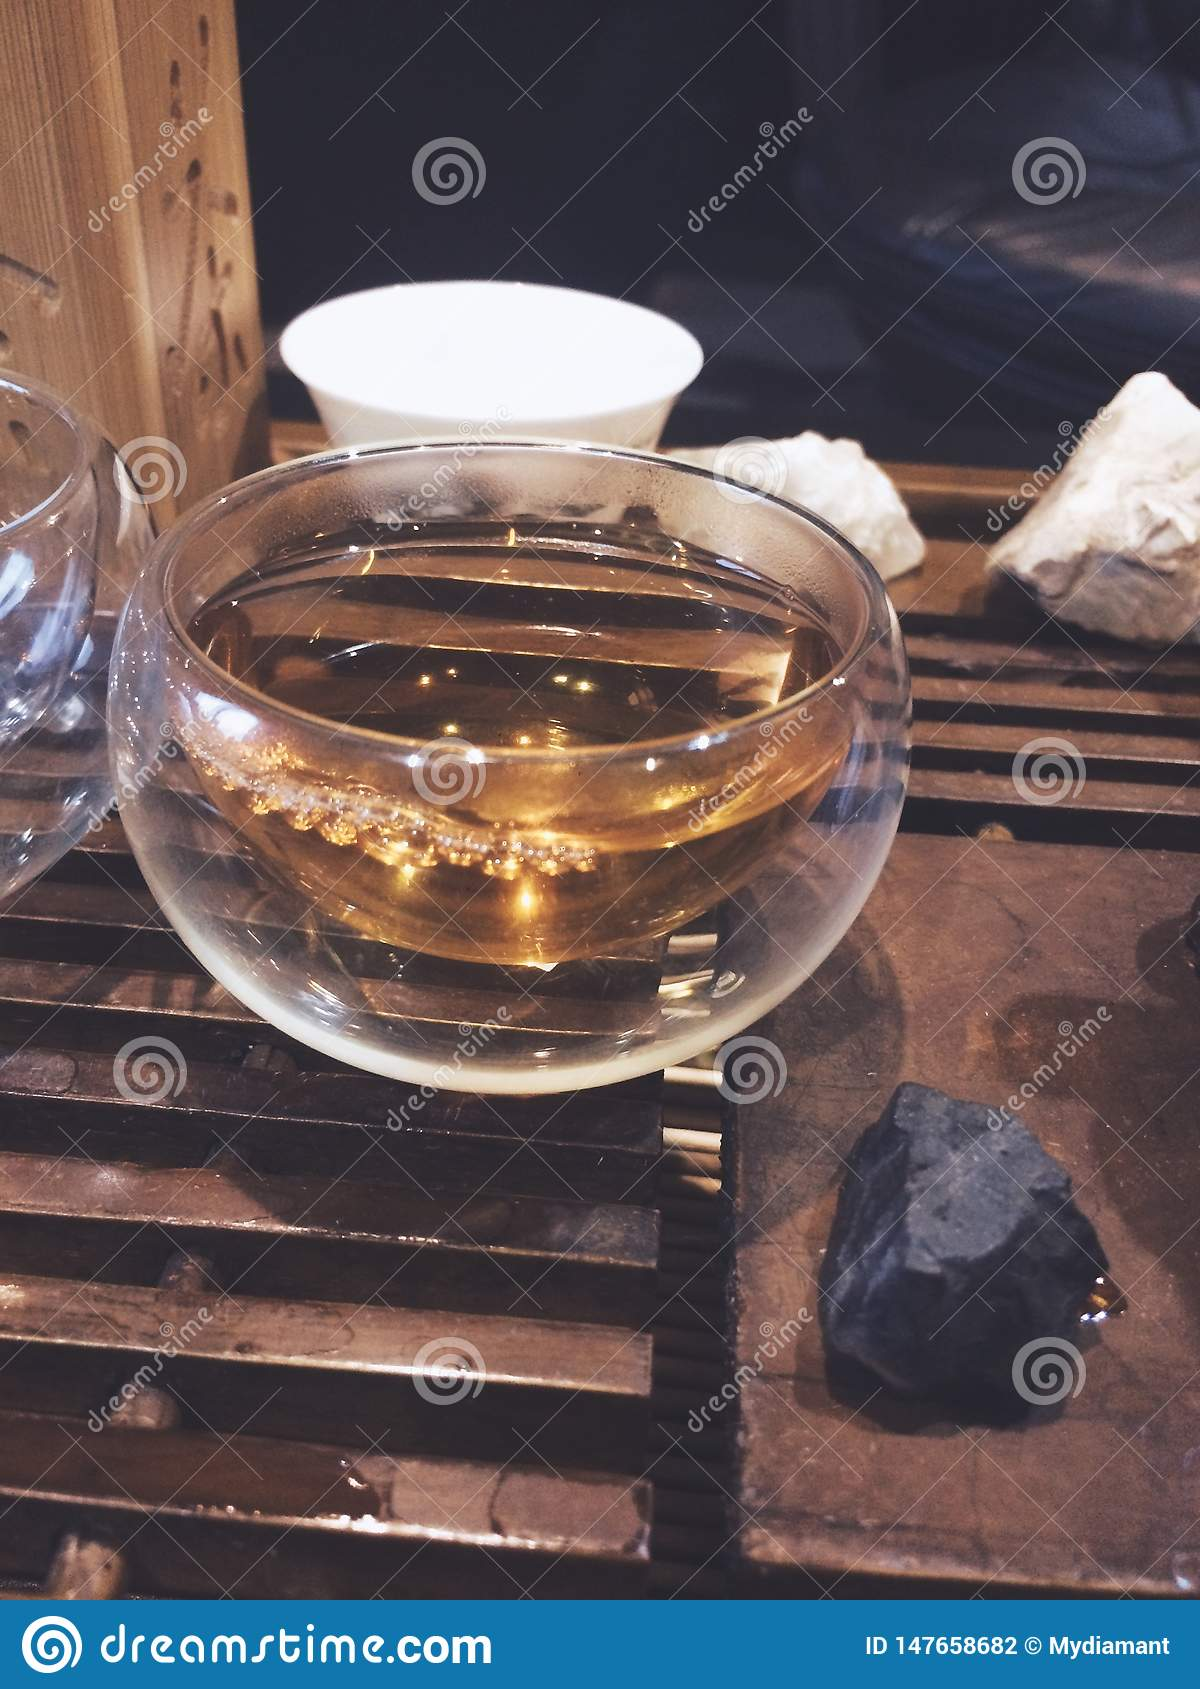 Extra close up glass small cup bubble, tea ceremony